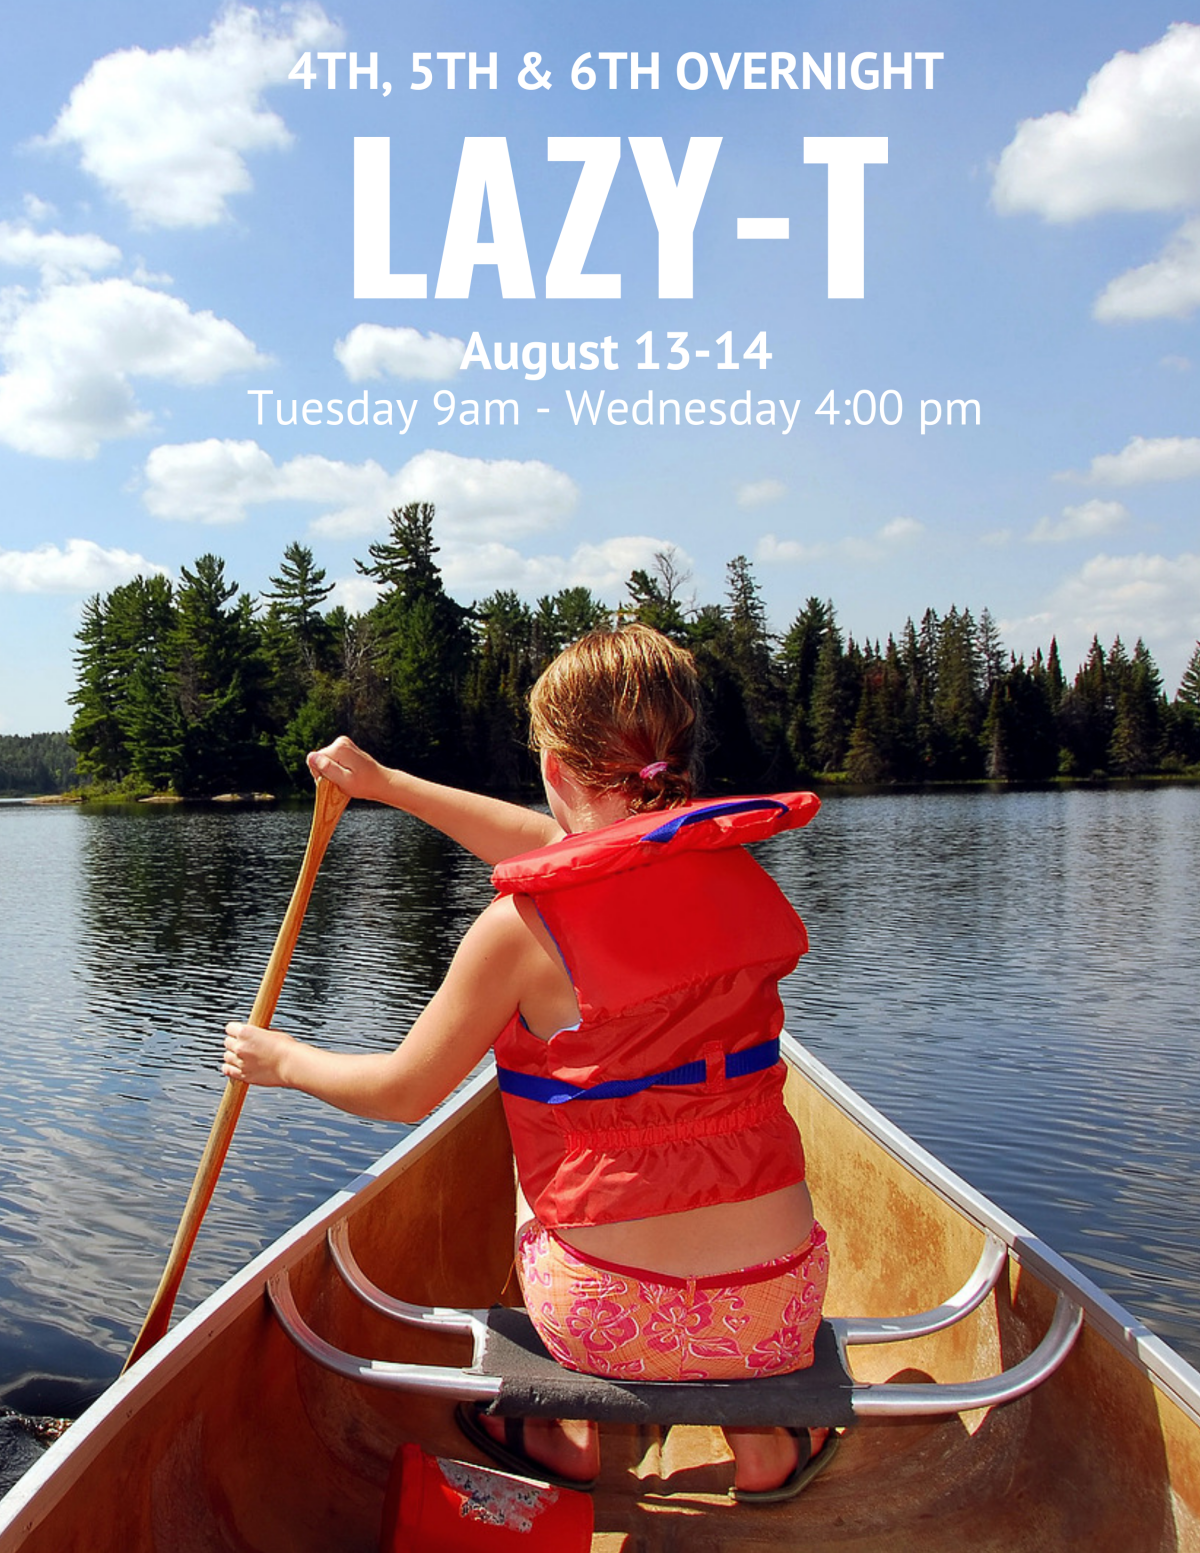 Lazy T Camp for 4th, 5th & 6th Graders!